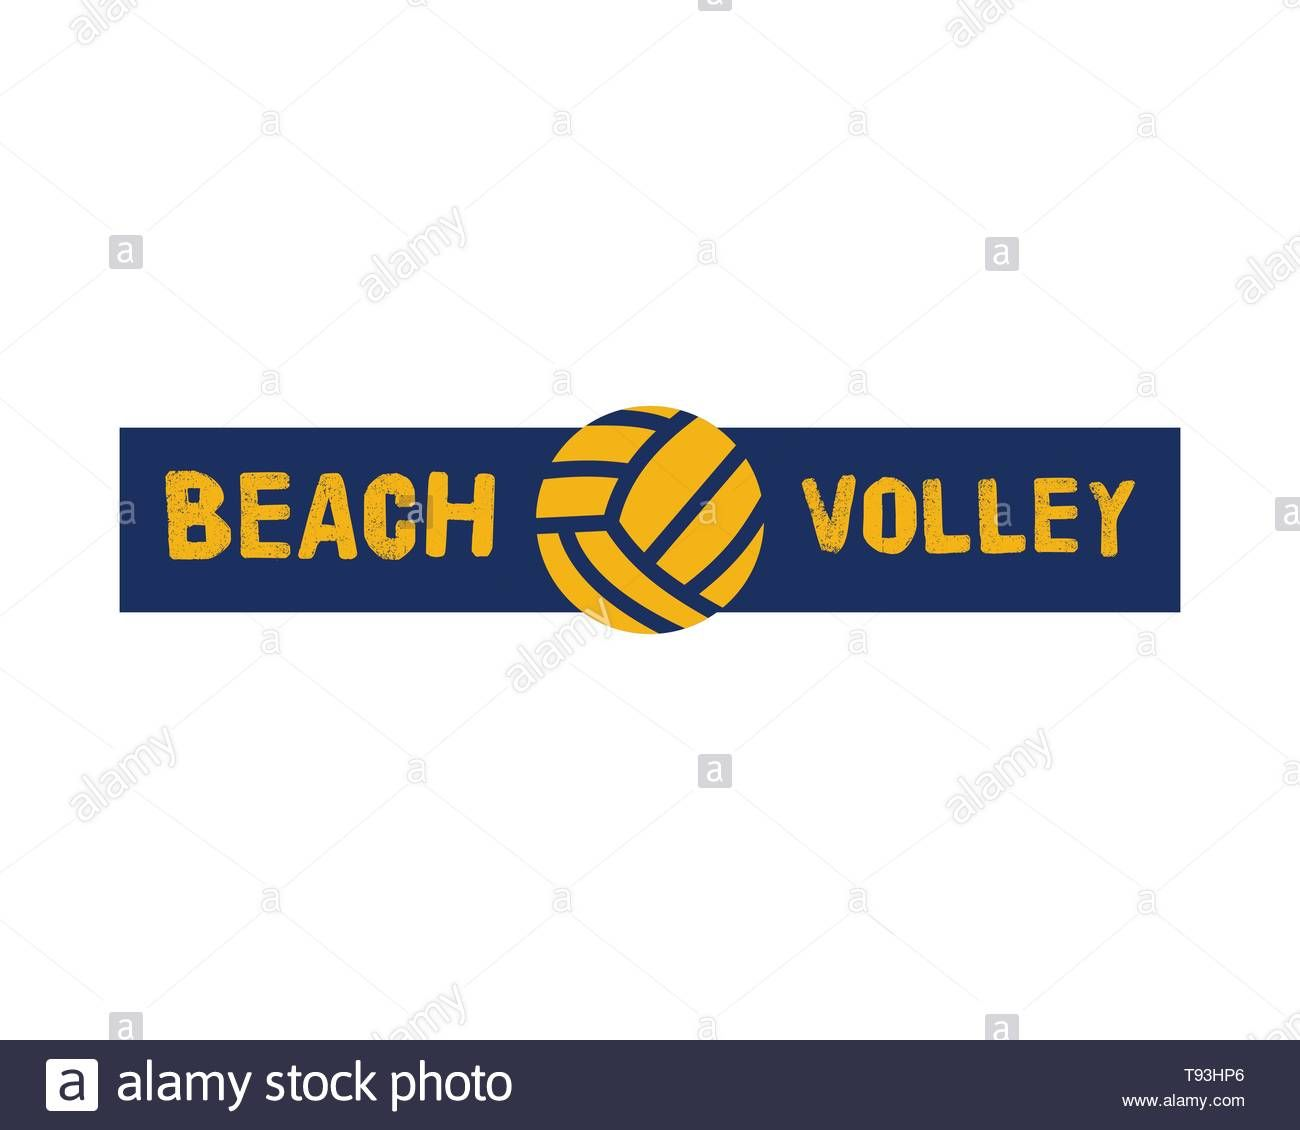 Download This Stock Vector Beach Volleyball Logo Template Badge Volley Sign With Ball Colorful Label Design Fo Label Design Logo Templates Beach Volleyball